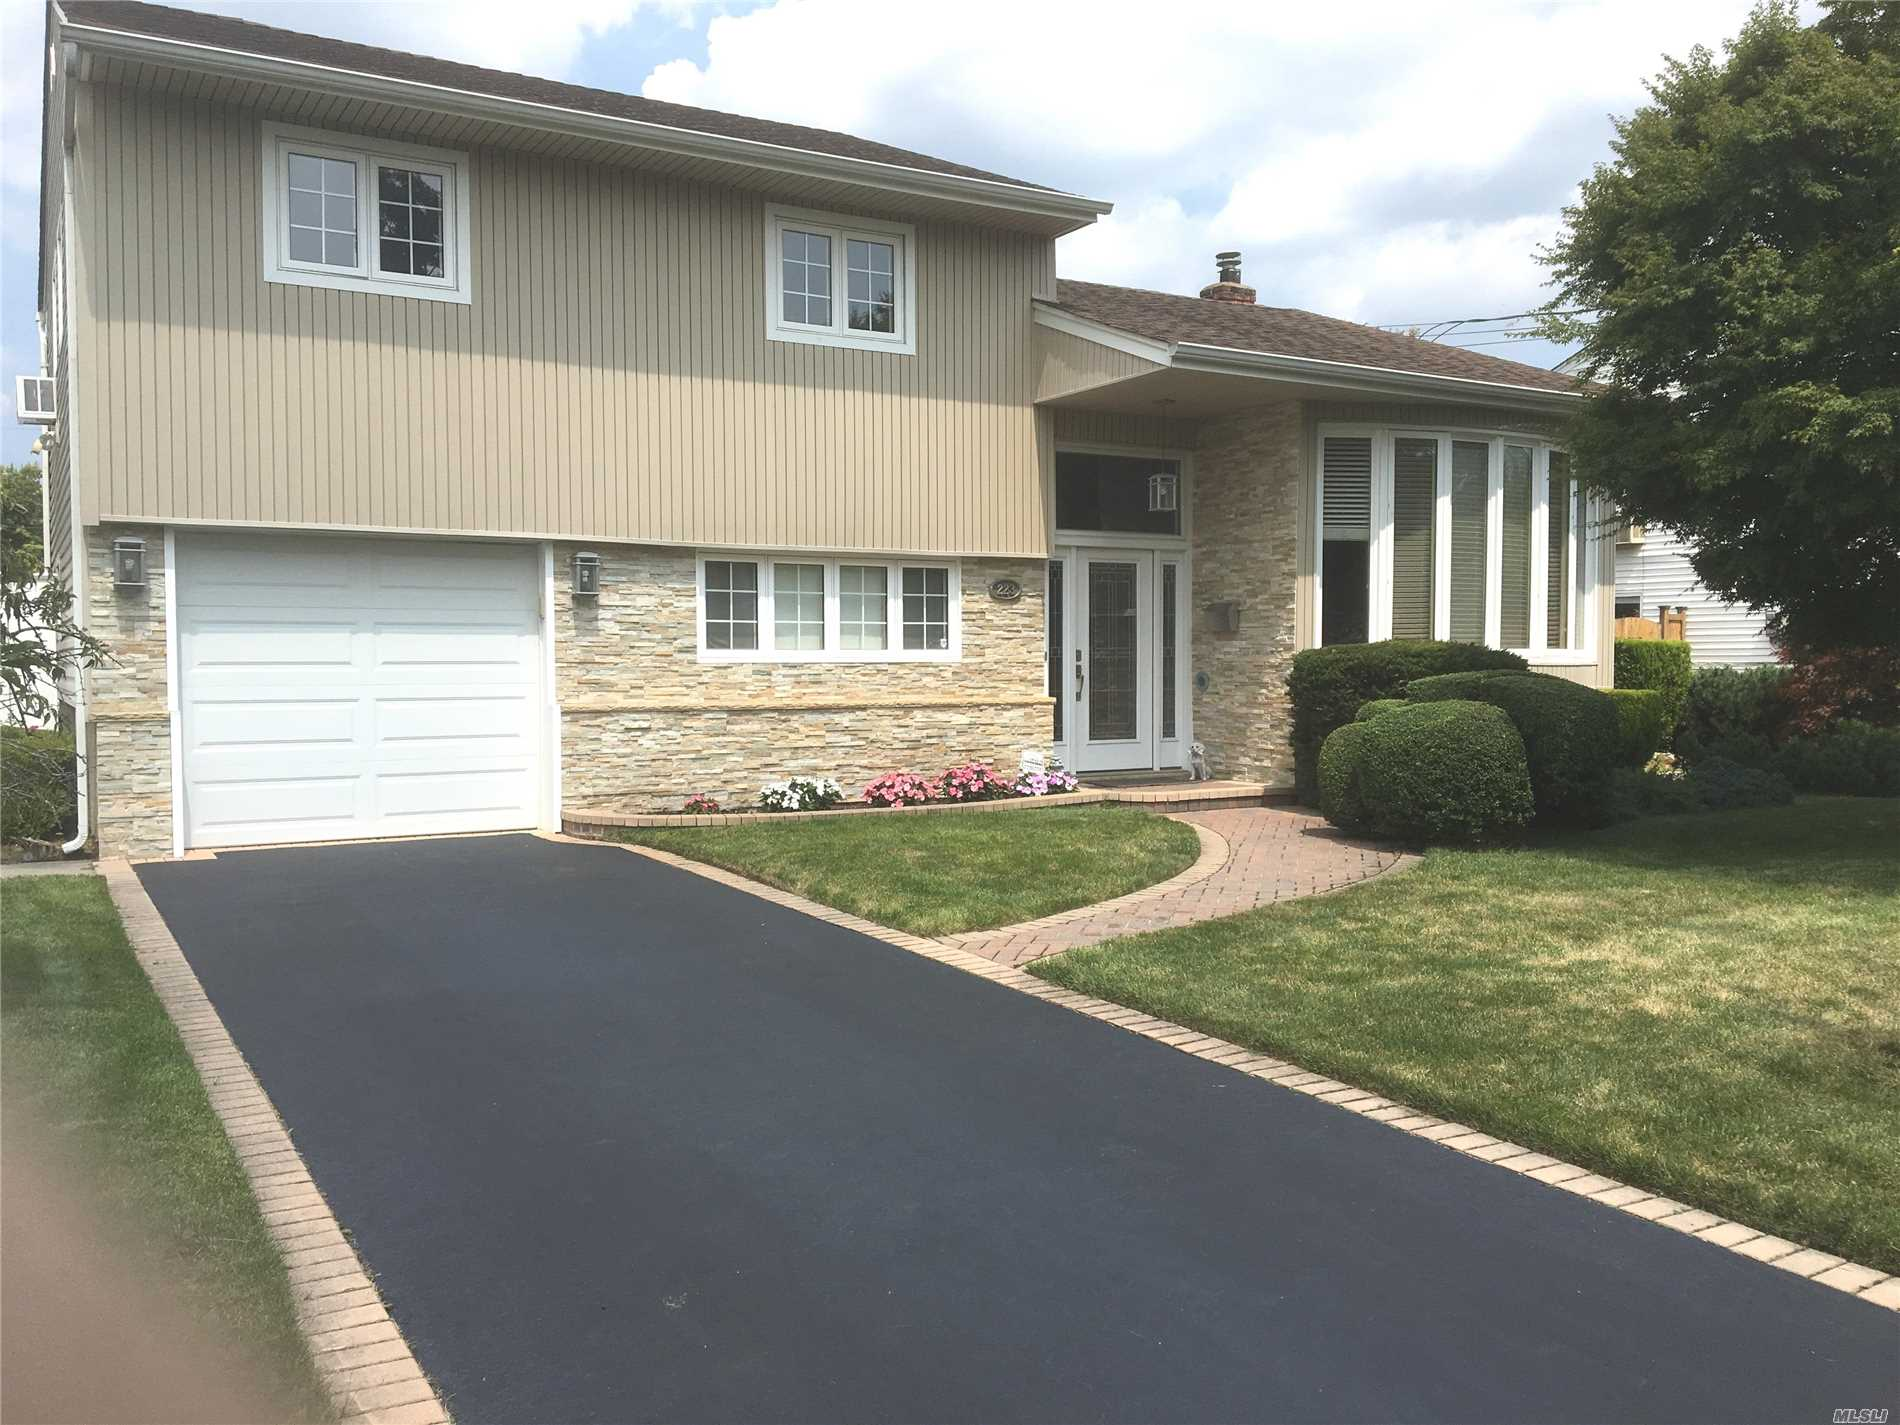 Great Updated Split With, New Stone Front/Siding, New Front Door/Window, New Main Bath, New Cac, Gas Tank Less Hot Water, Garage Door/Opener.Updated Kitchen/Sliding Doors, Windows, 2nd Bath, Crown Molding, S/S Appliances, Blacktop Driveway, Nice Layout, Come See!